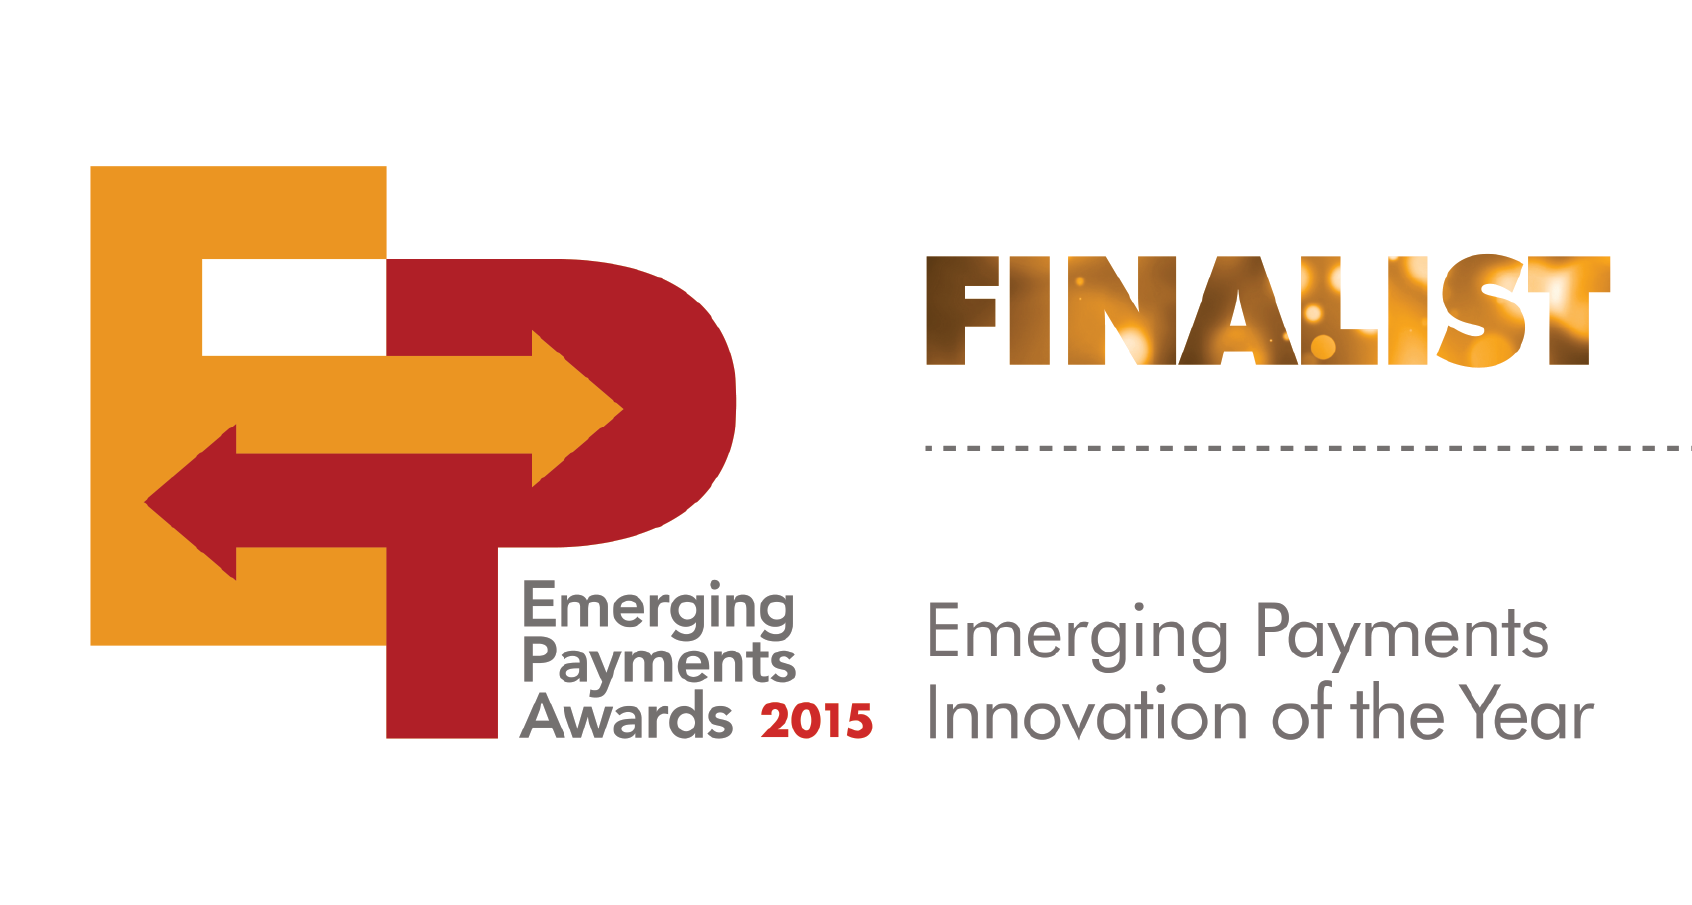 Emerging Payments awards